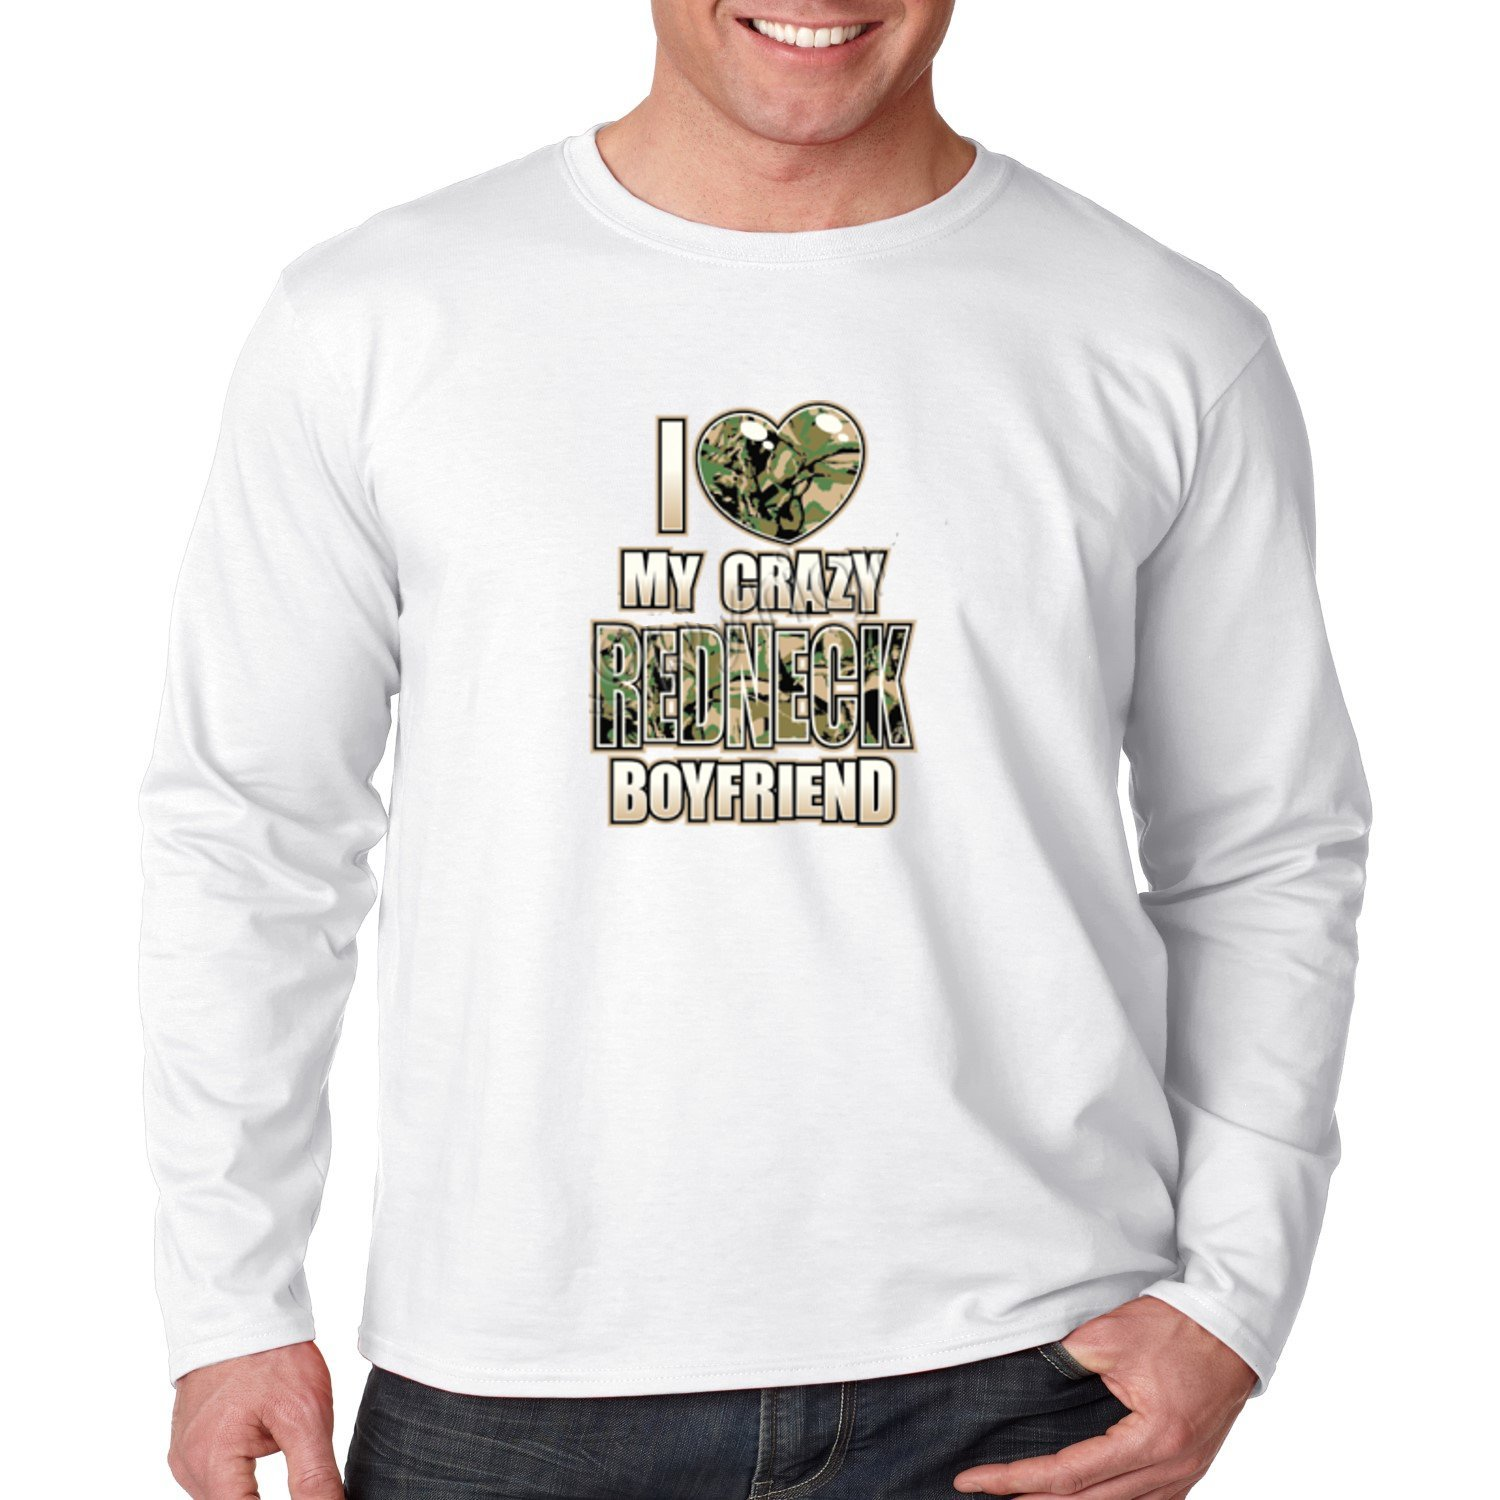 Juiceclouds | Long Sleeve Shirt I Love My Crazy Redneck Boyfriend (White, 3XL) by Juiceclouds (Image #1)